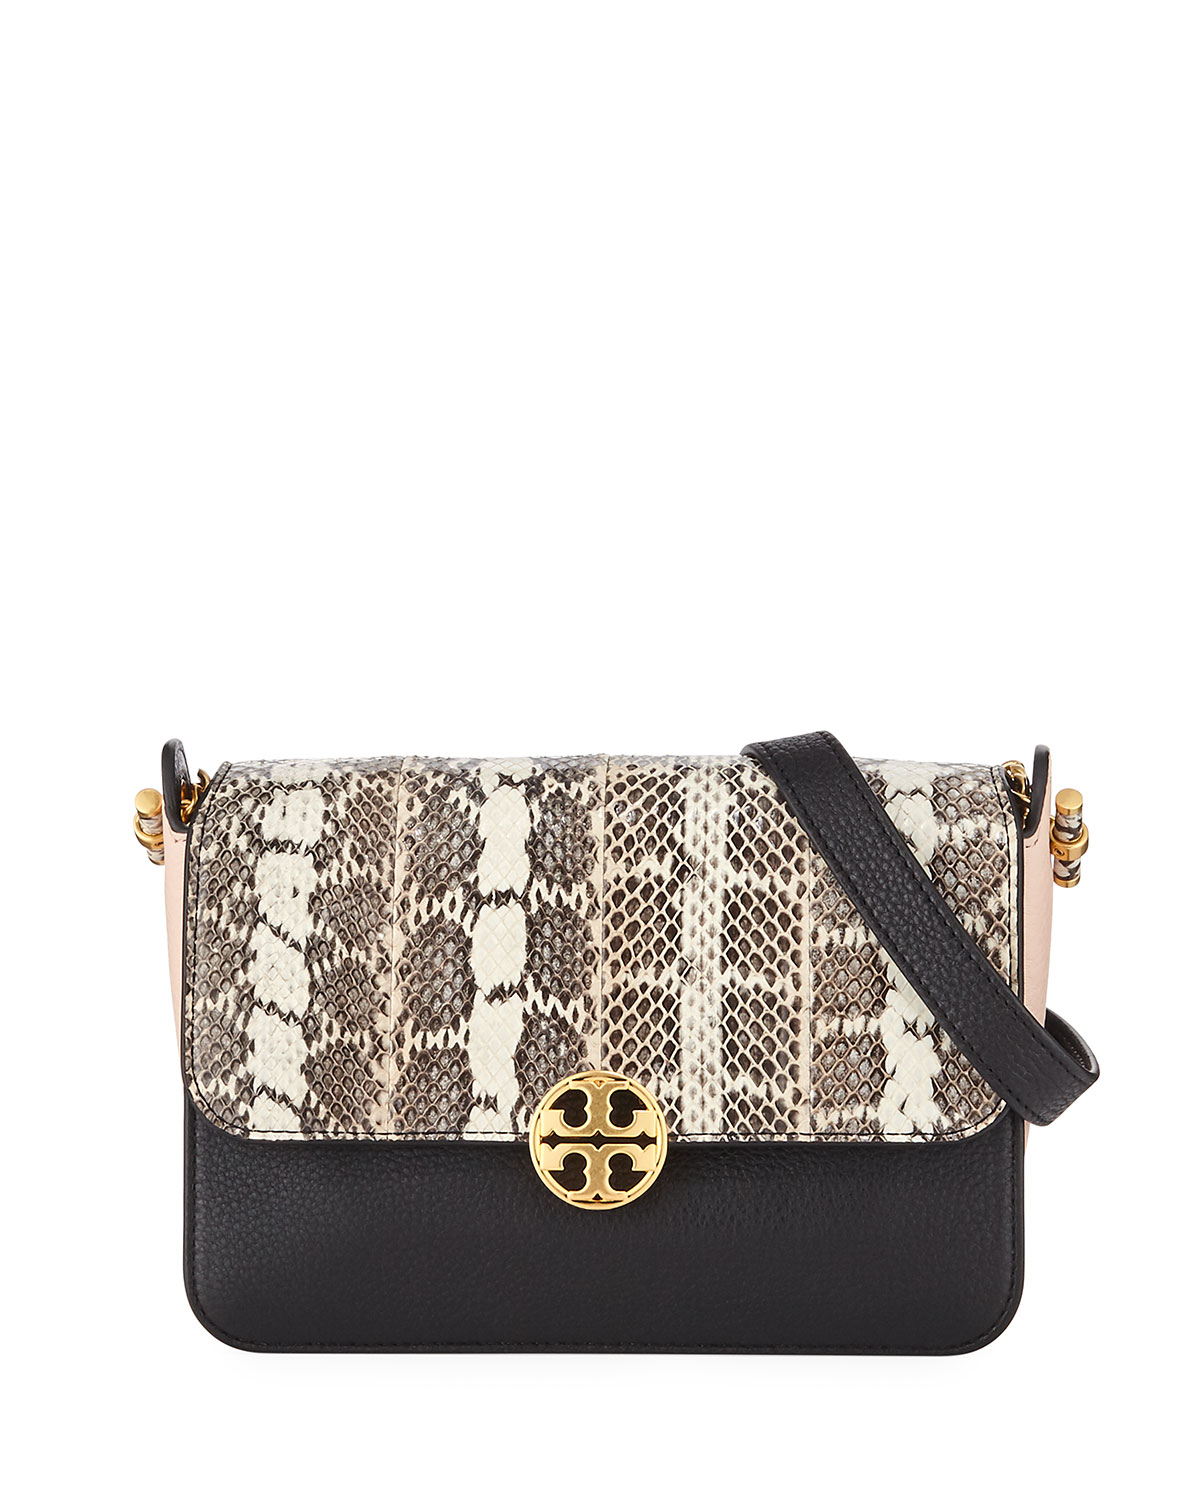 cae4bf5096c5 Tory Burch Chelsea Colorblock Snake Crossbody Bag | Neiman Marcus